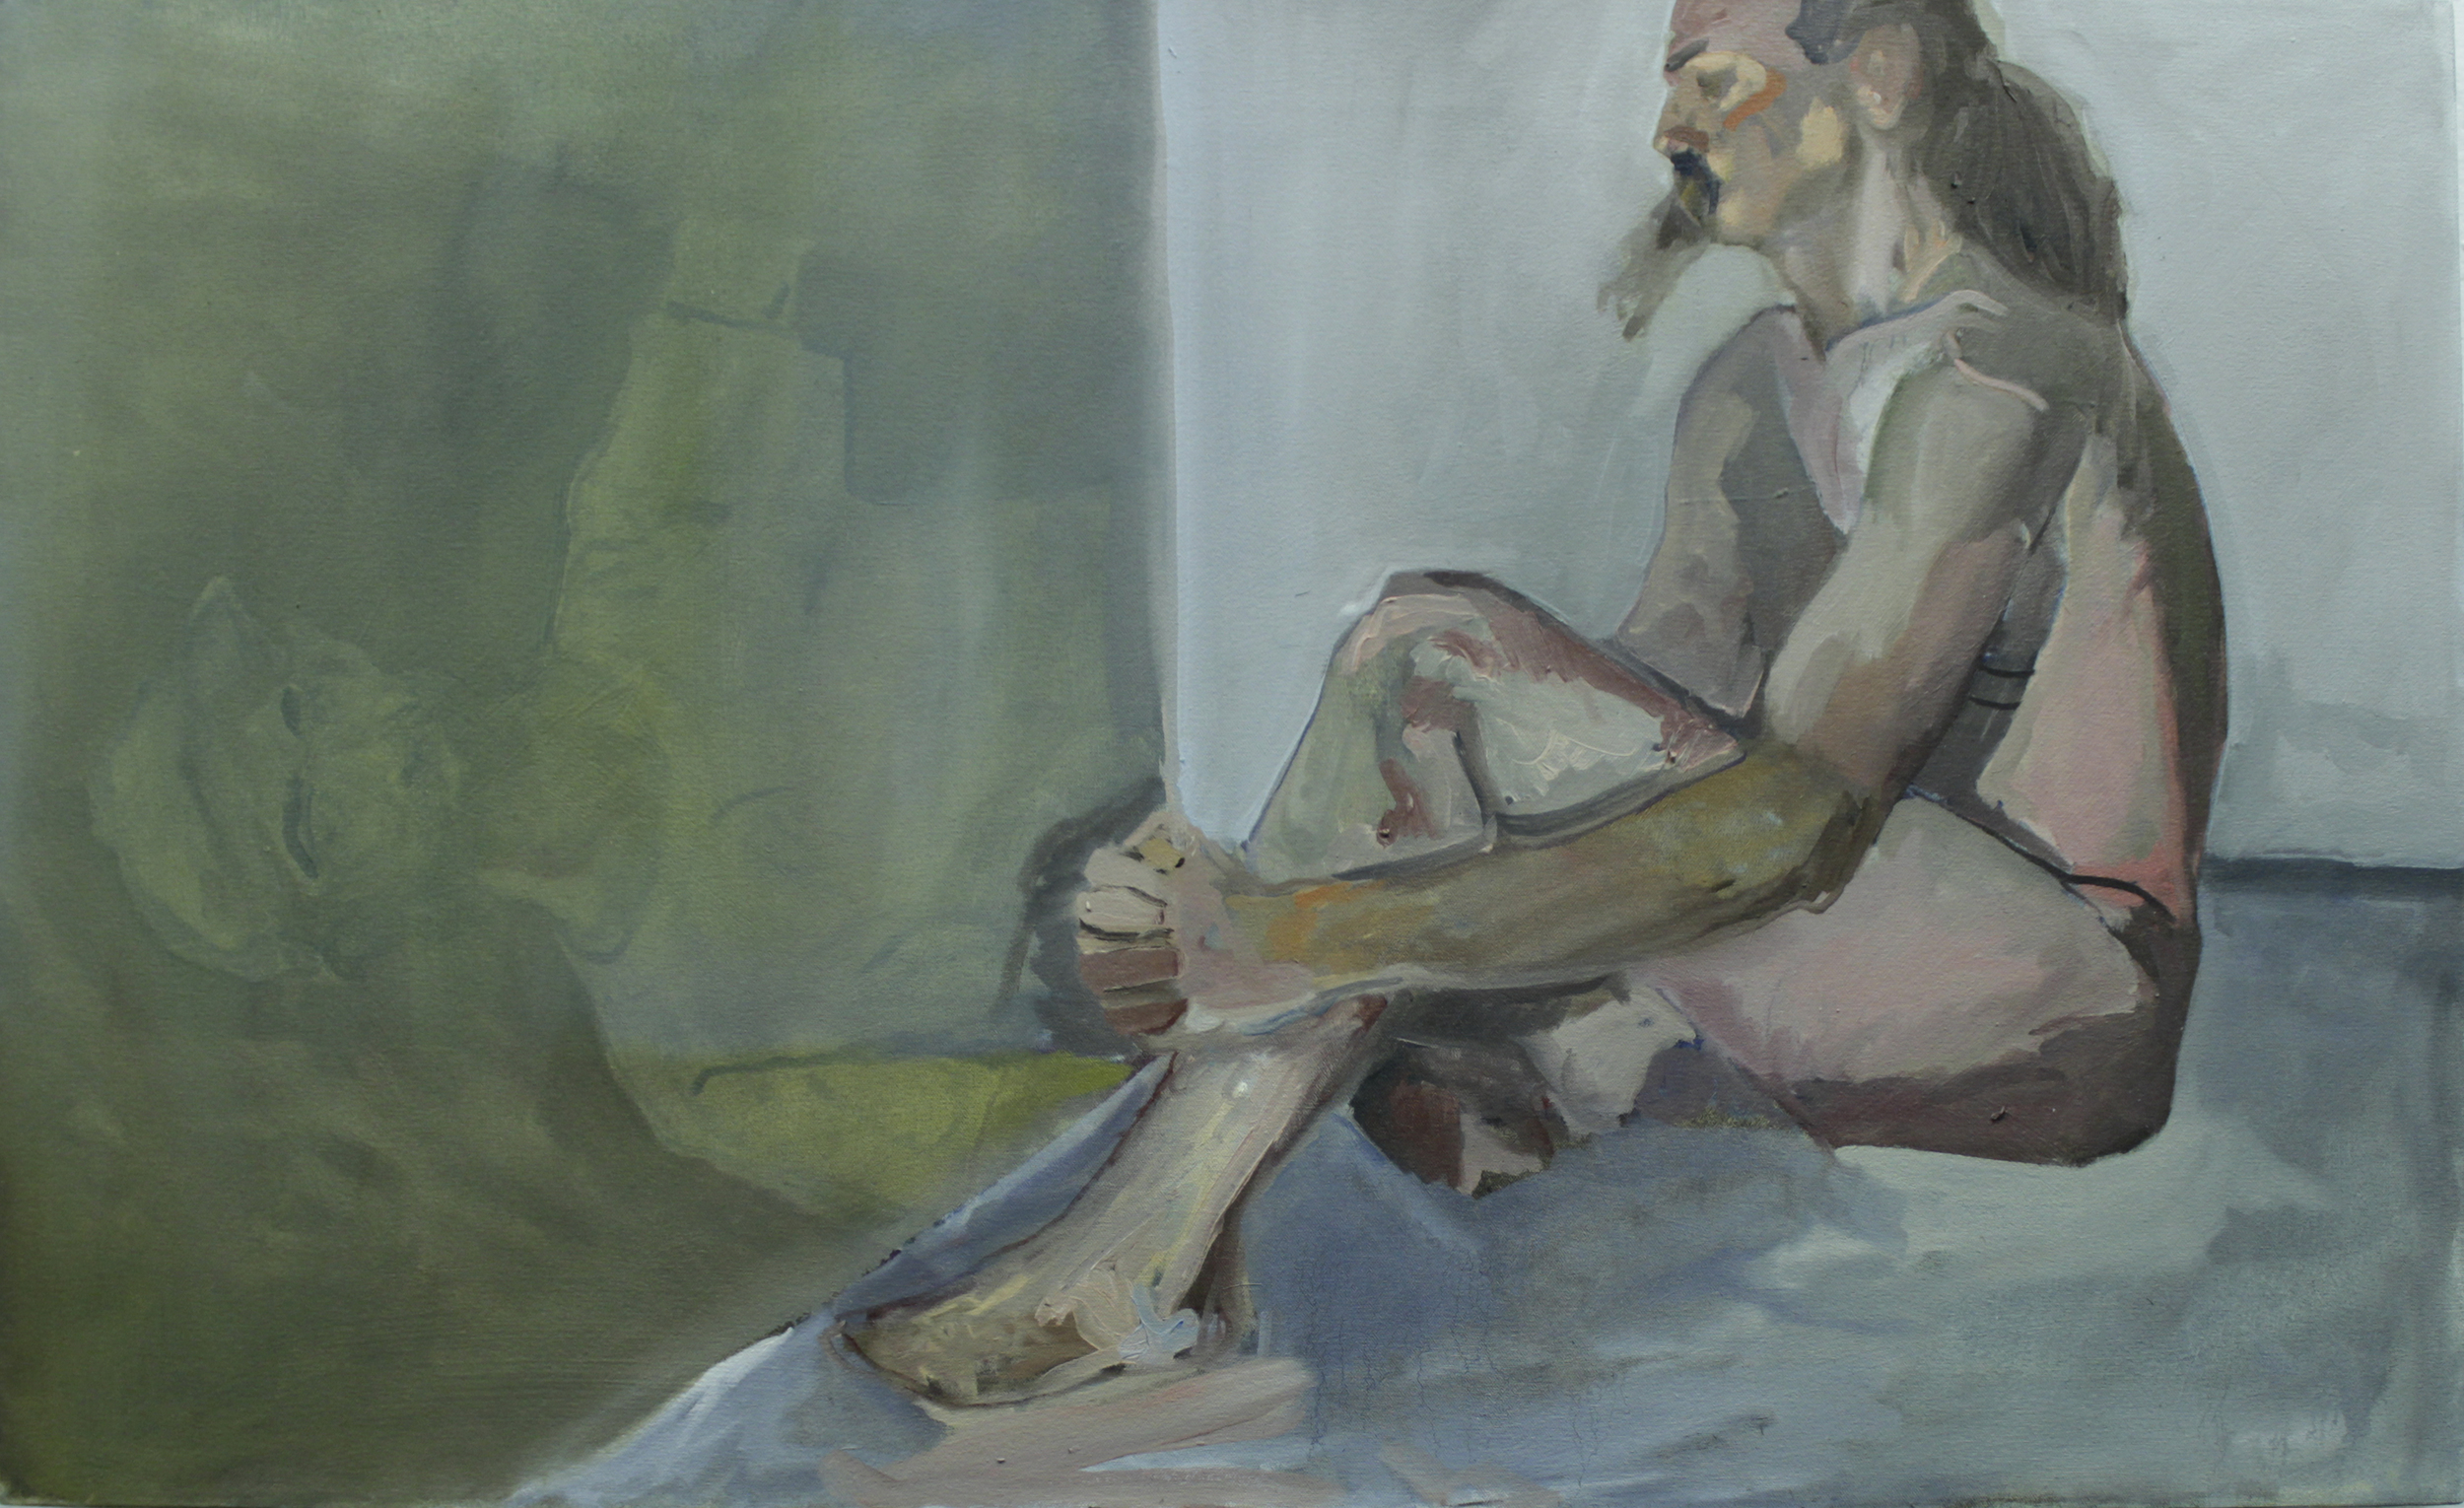 Untitled Study Over-imposed on Self Portrait